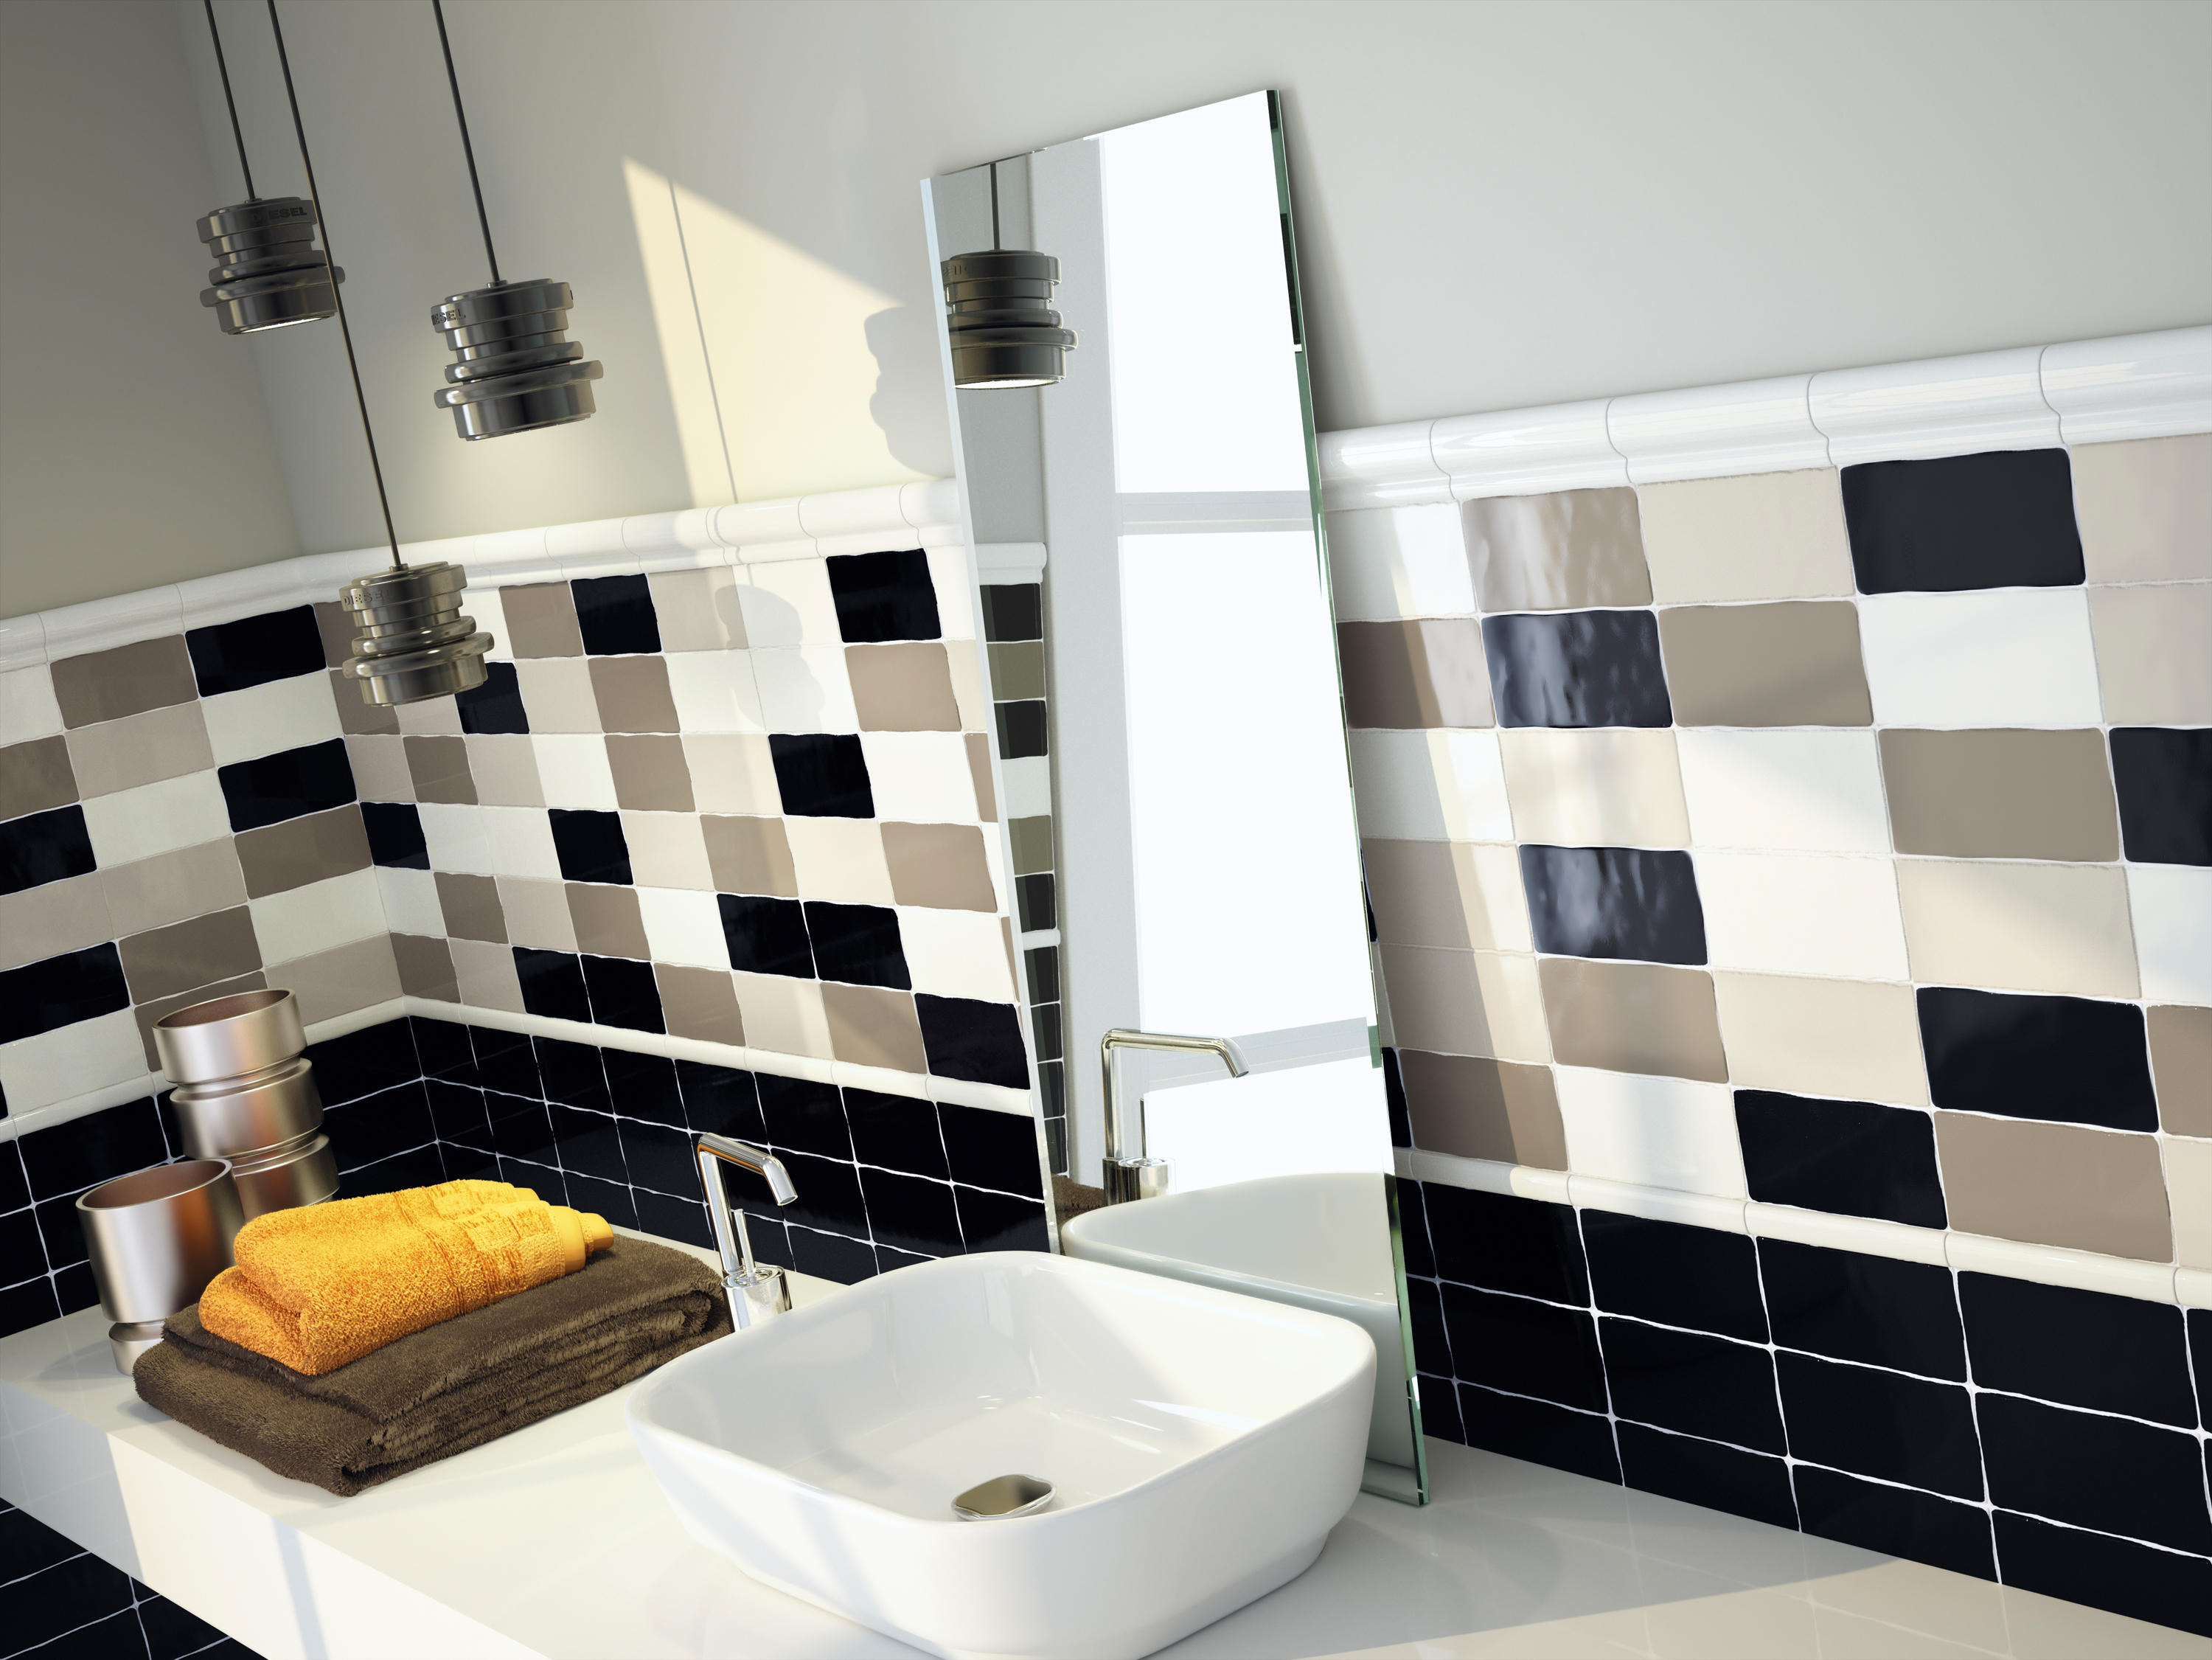 VINTAGE WHITE - Ceramic tiles from APE Grupo | Architonic